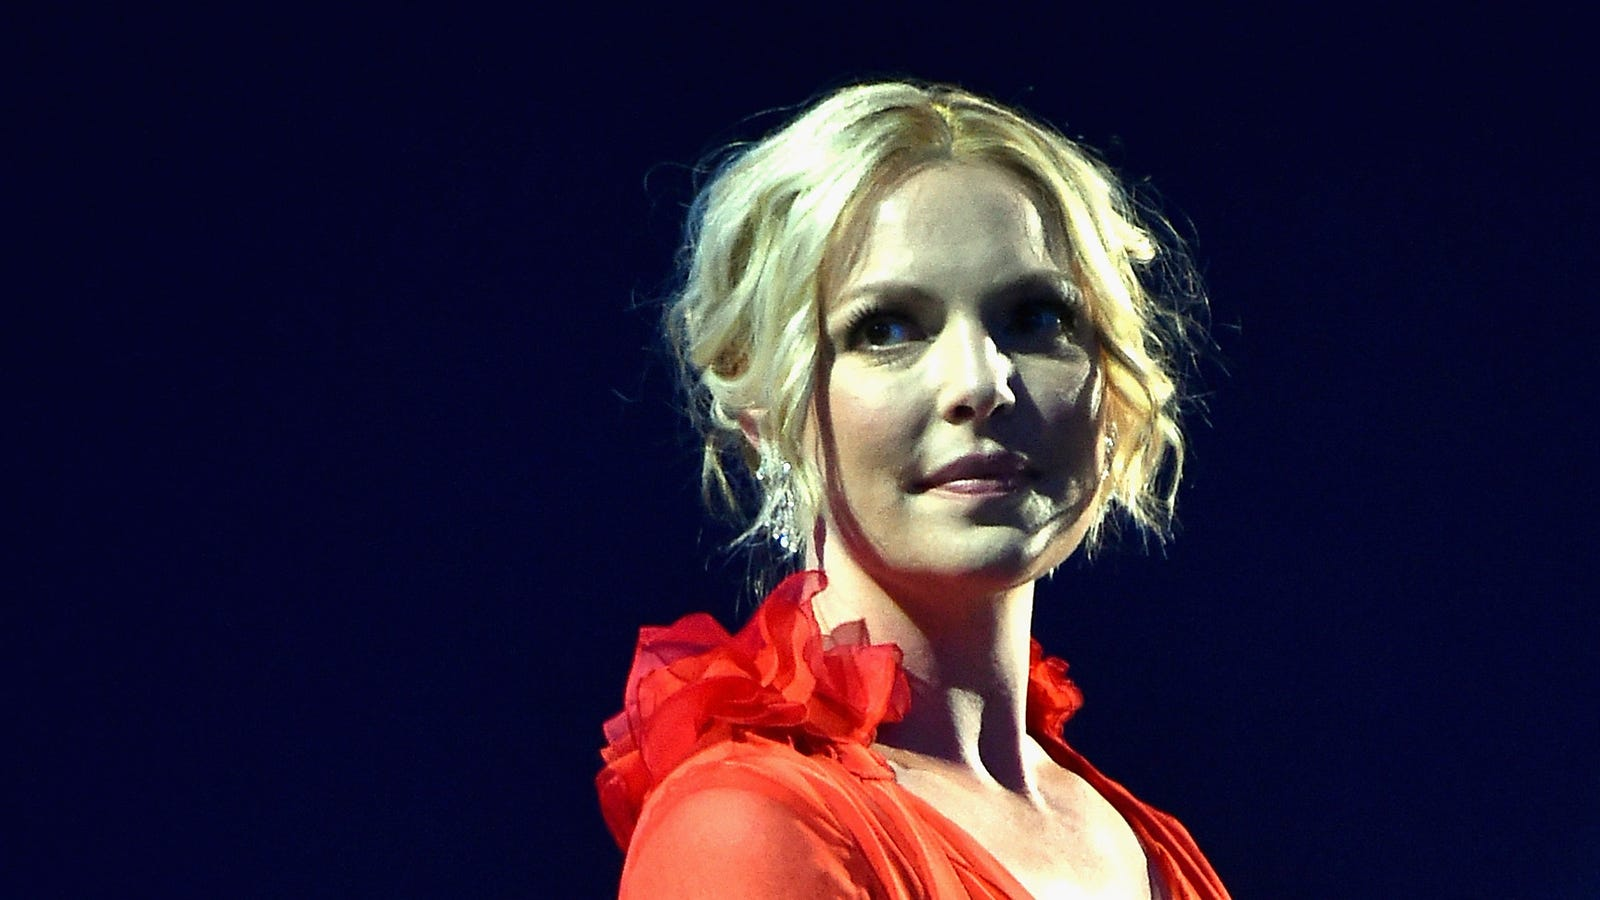 No katherine heigl did not sign a 39 non diva agreement 39 before joining the cast of suits - Katherine heigl diva ...